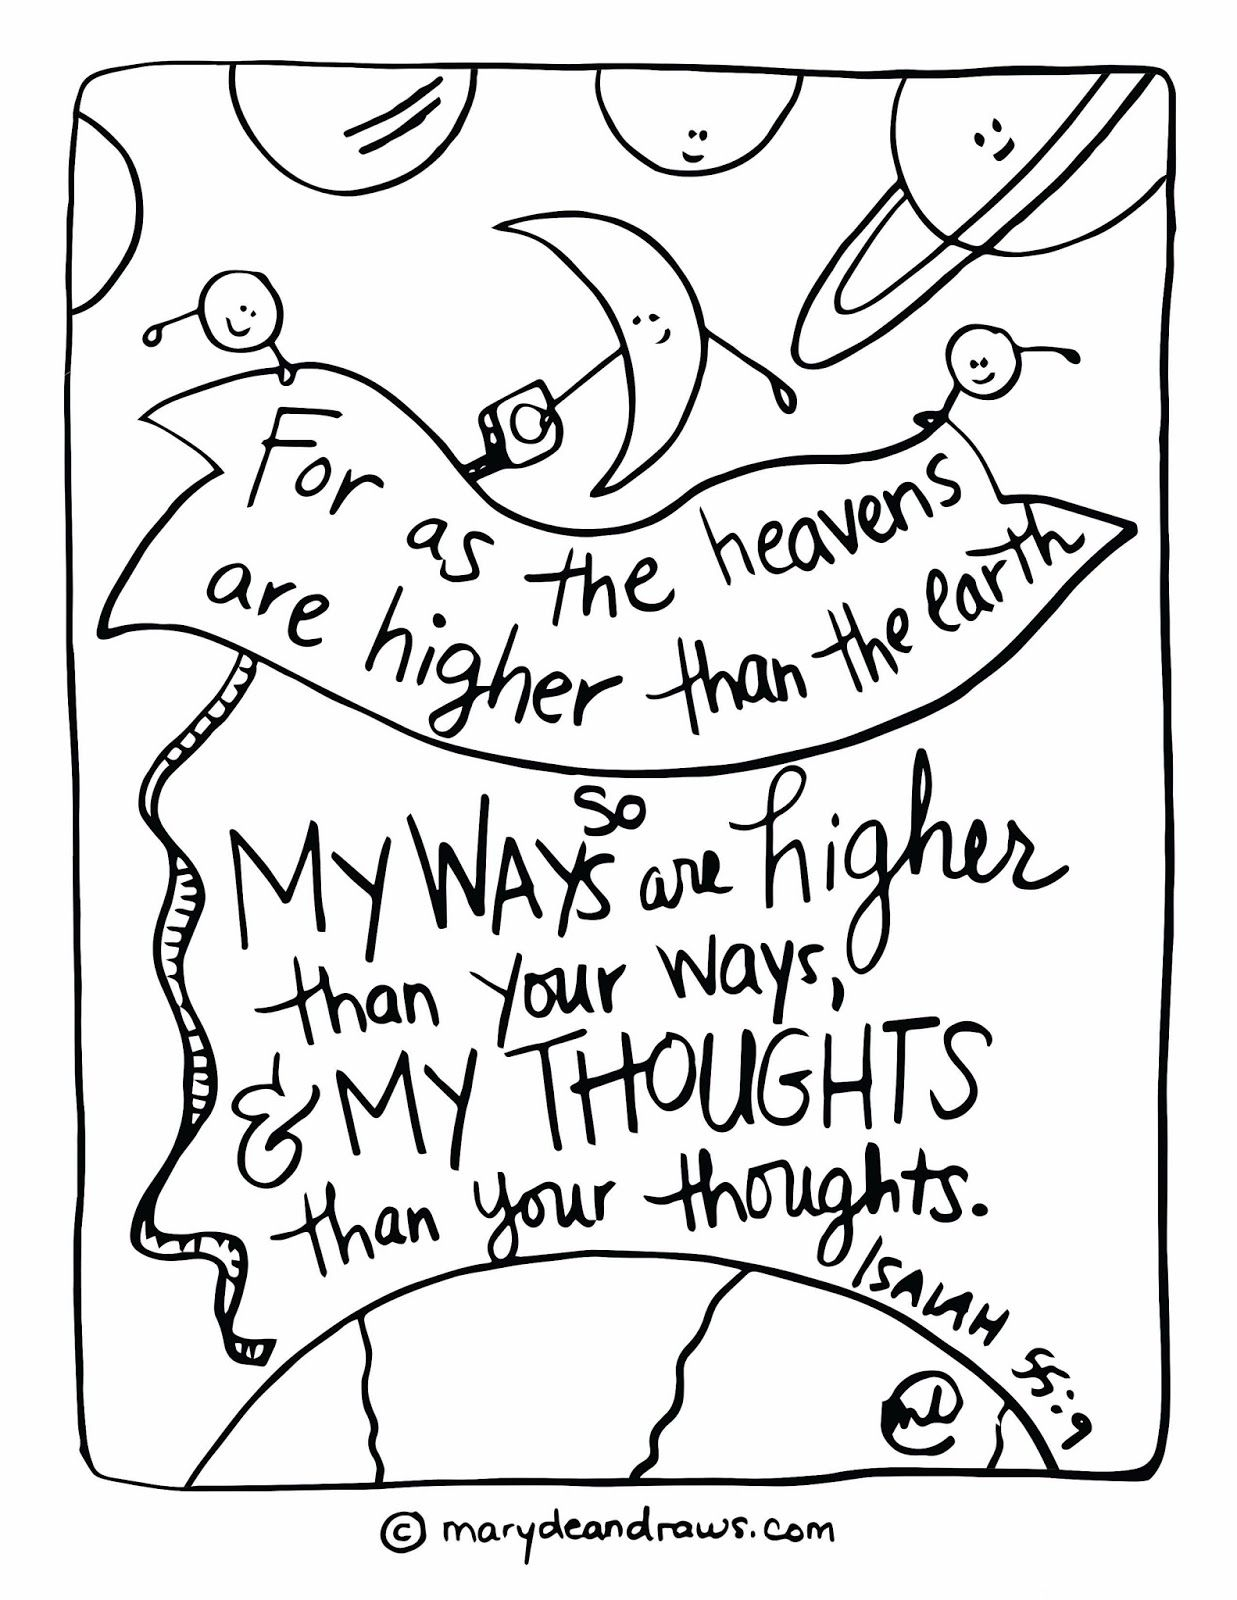 Isaiah 559 Printable Scripture Coloring Page Marydean Draws